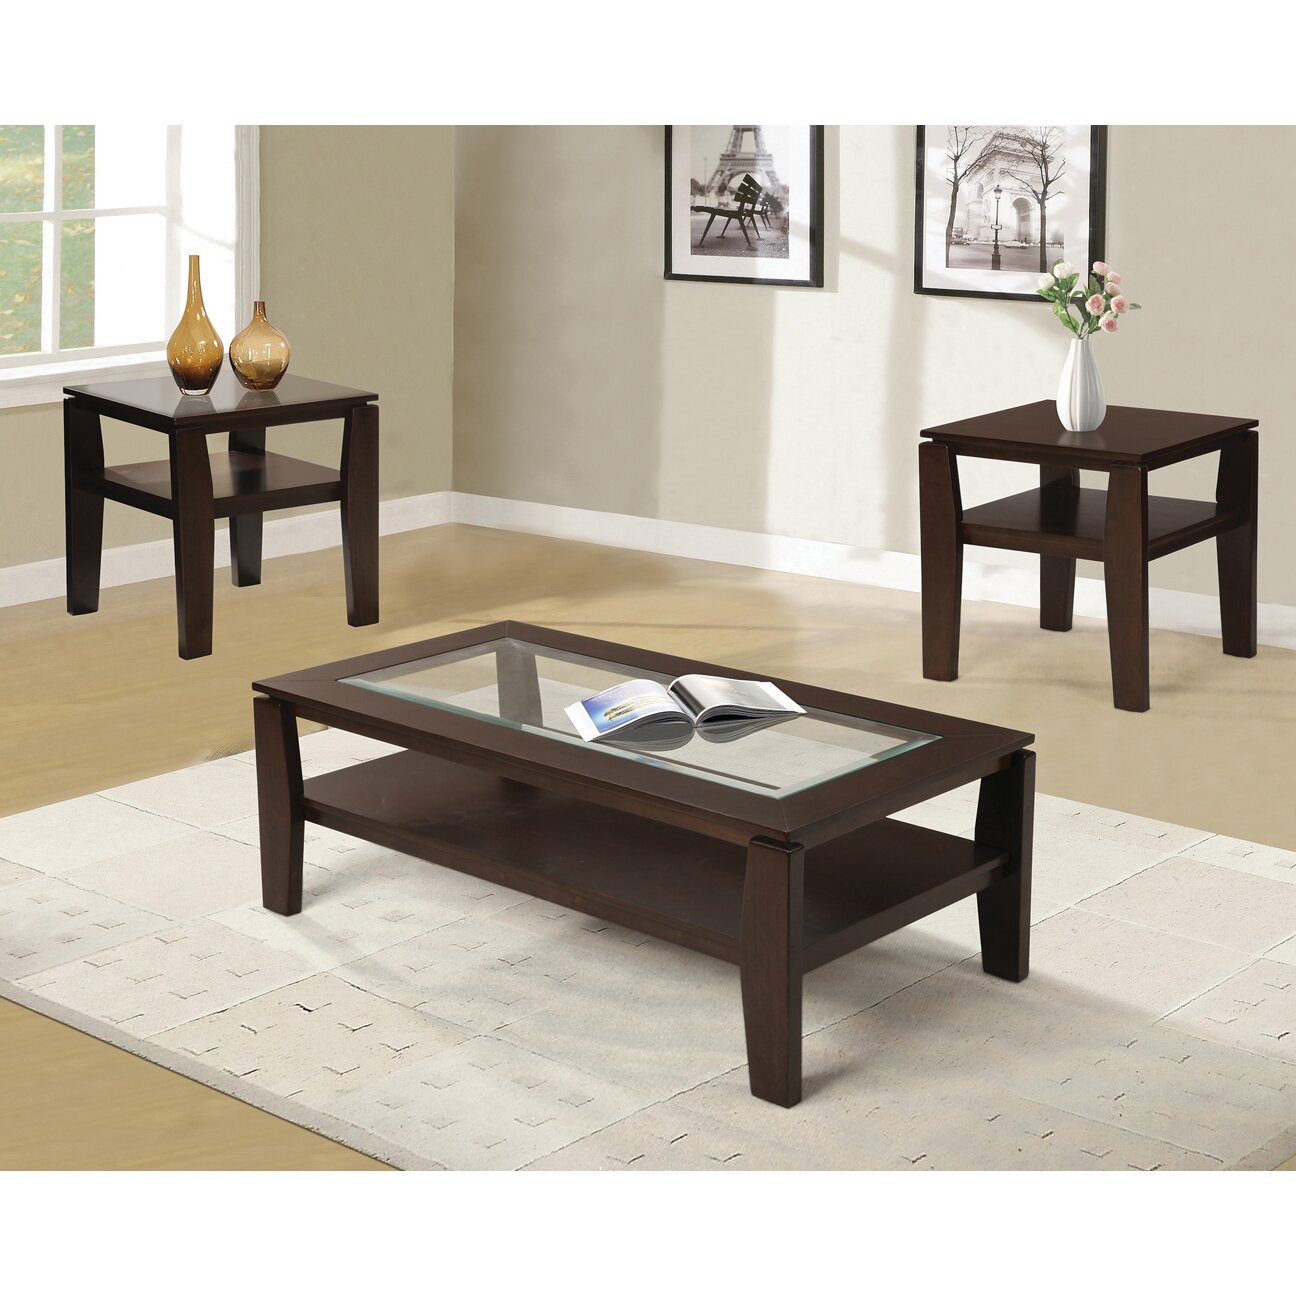 Red barrel studio golder 3 piece coffee table set reviews wayfair 3 set coffee tables